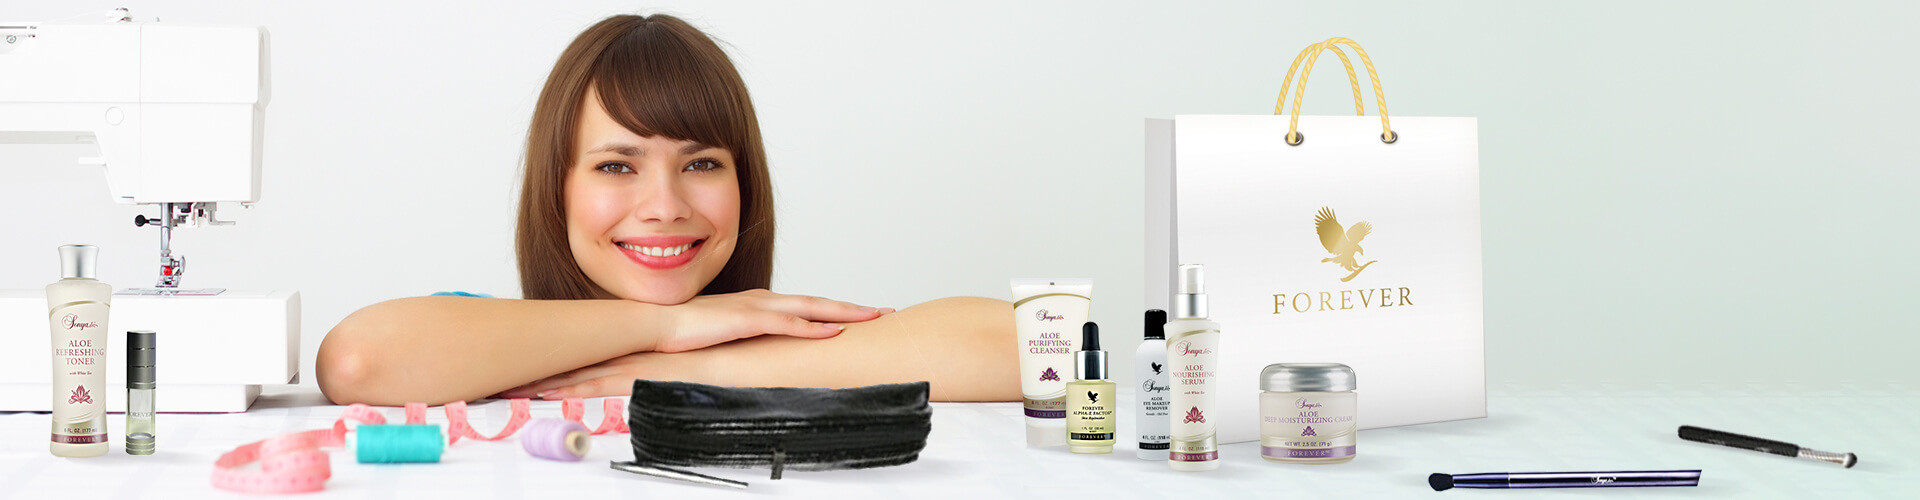 Forever Living Sonya Accessories - Aloe Cache